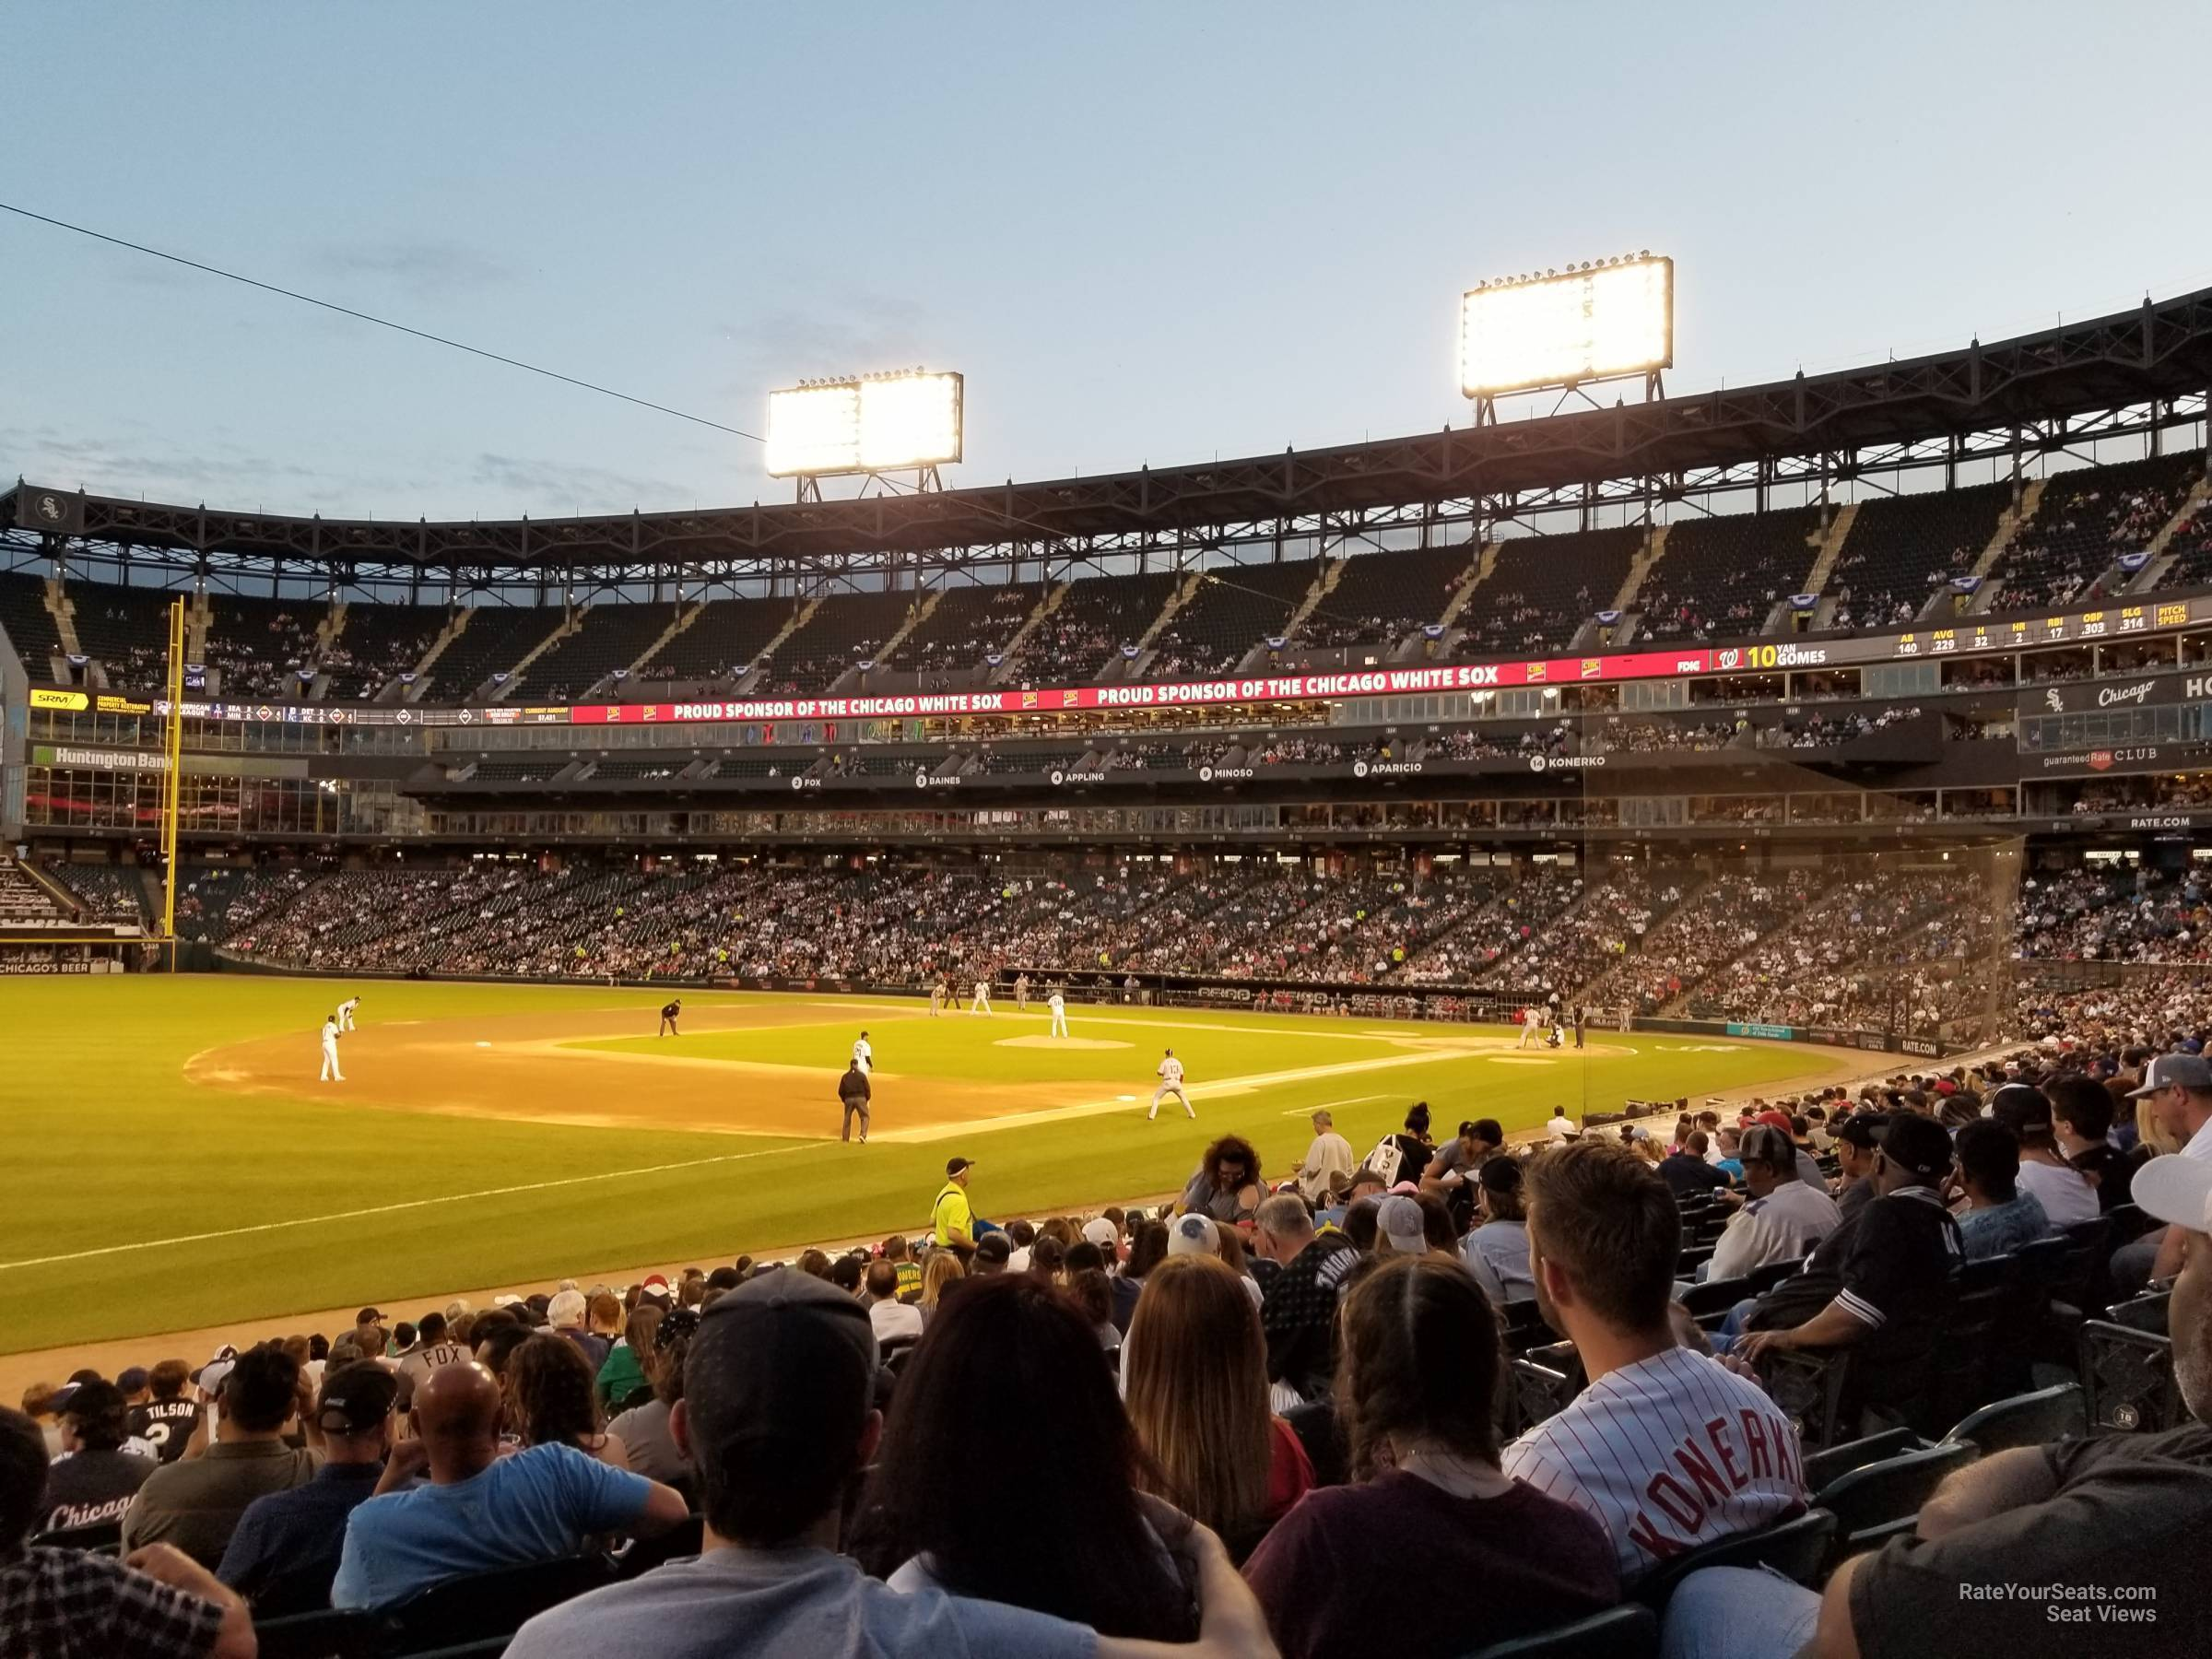 Section 147 seat view